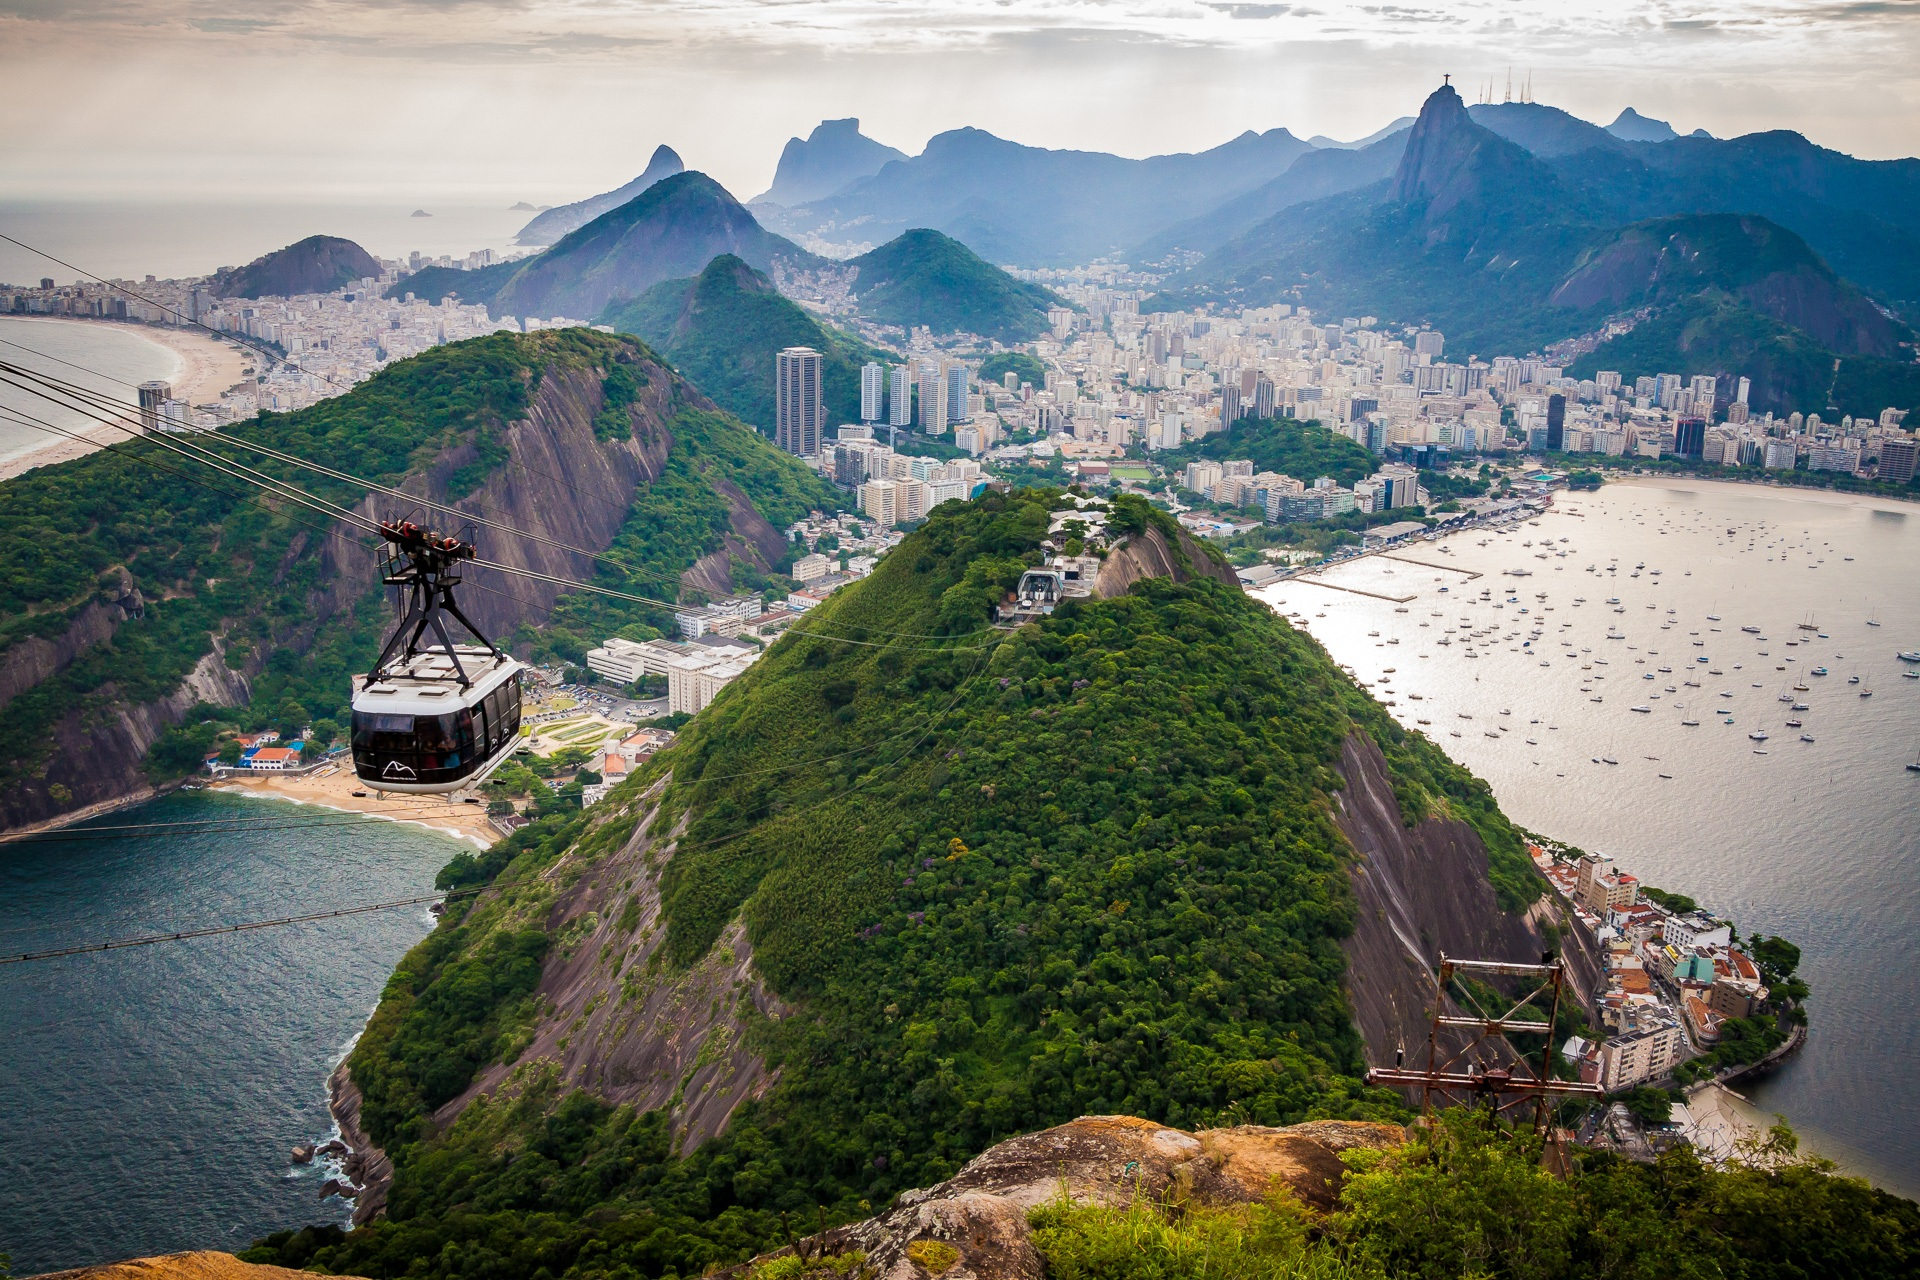 Photo of cable car over mountain in Rio de Janeiro, Brazil